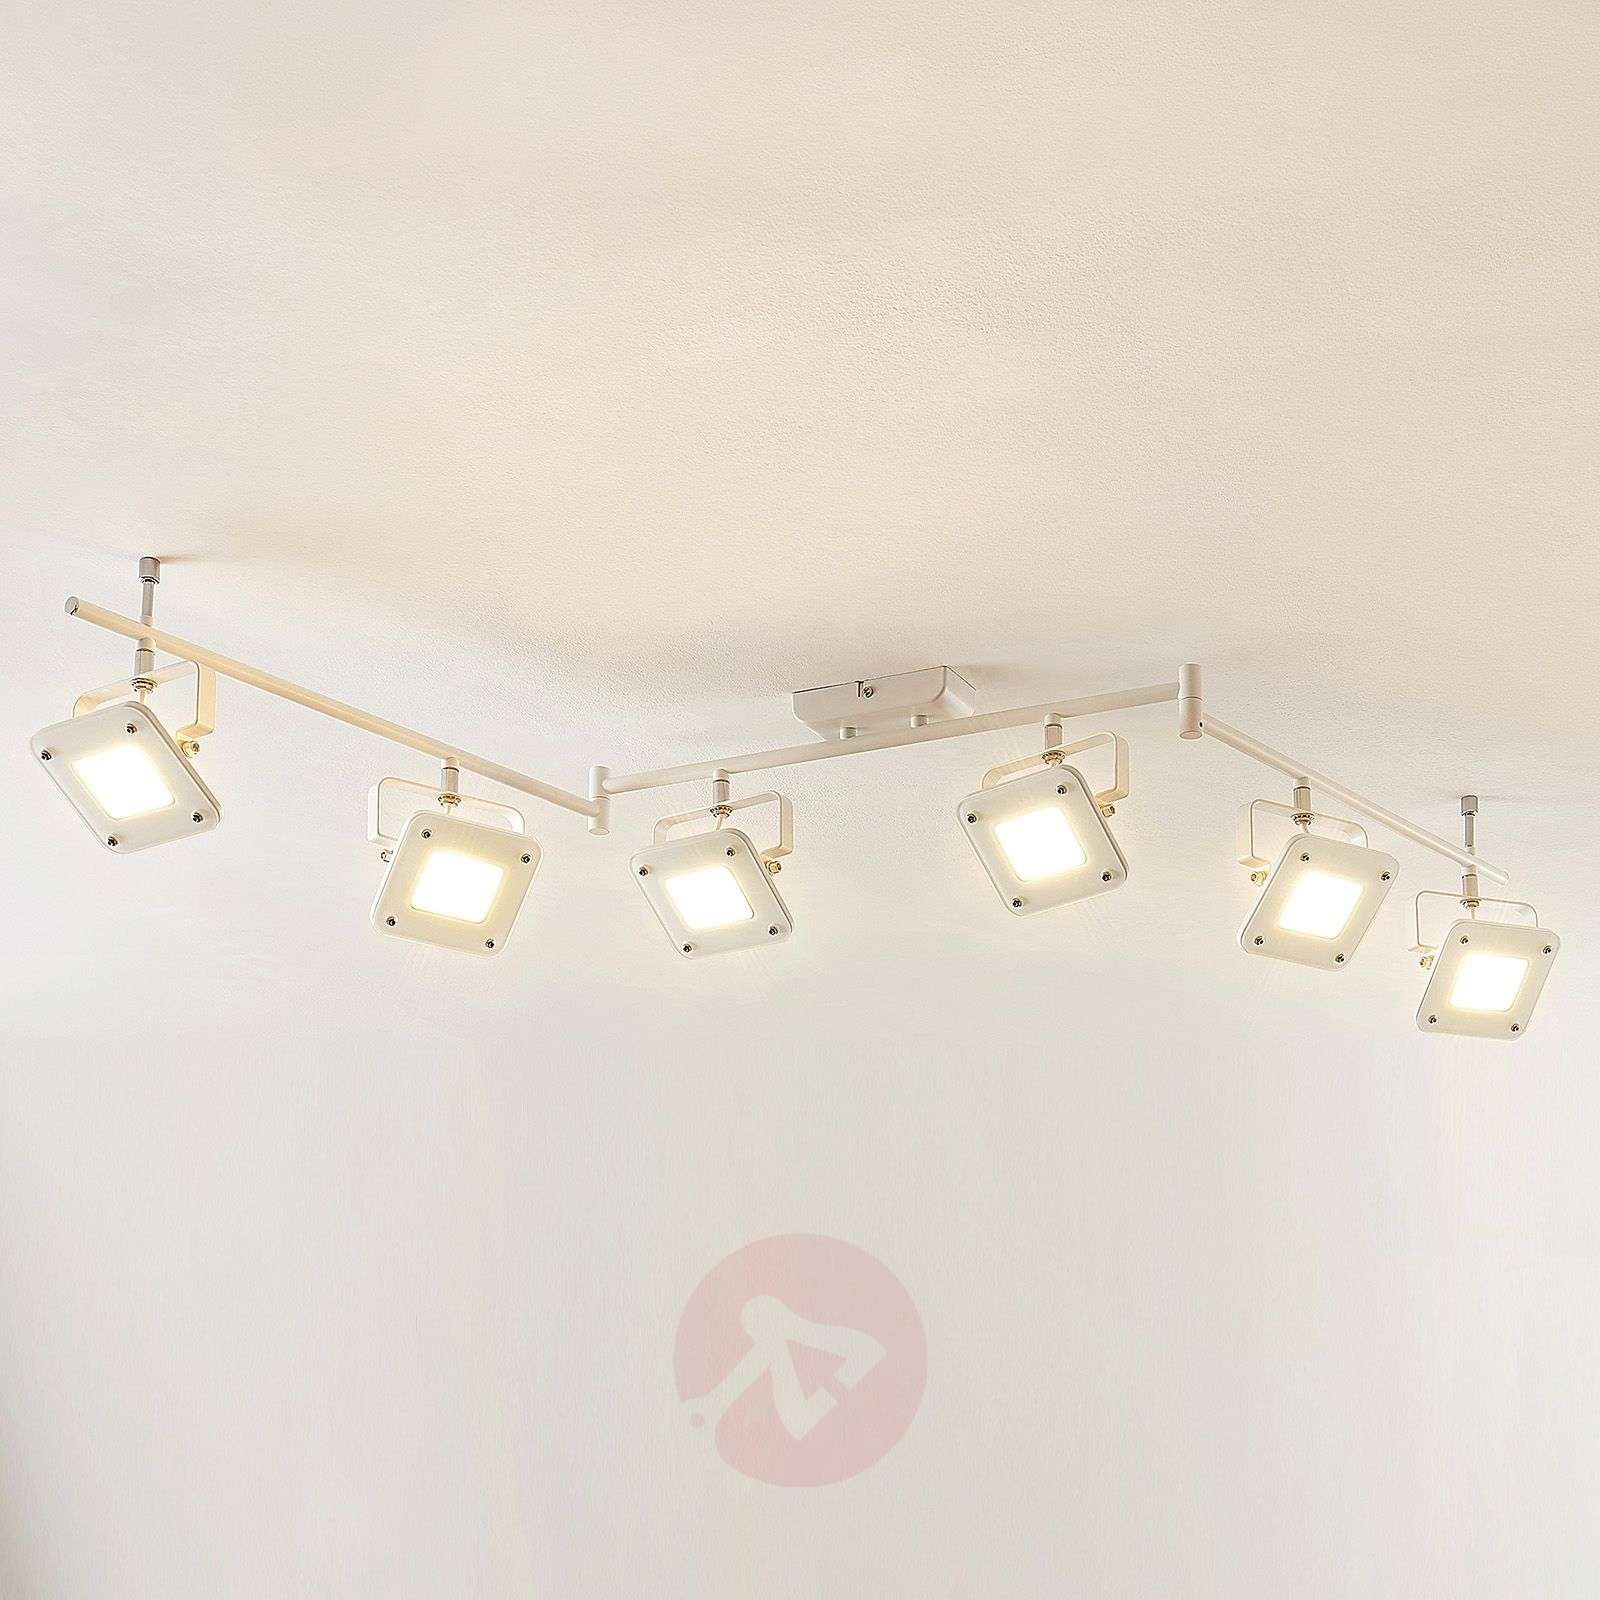 Spot pour plafond LED Juliana, dimmable, 6 lampes-9950720-05